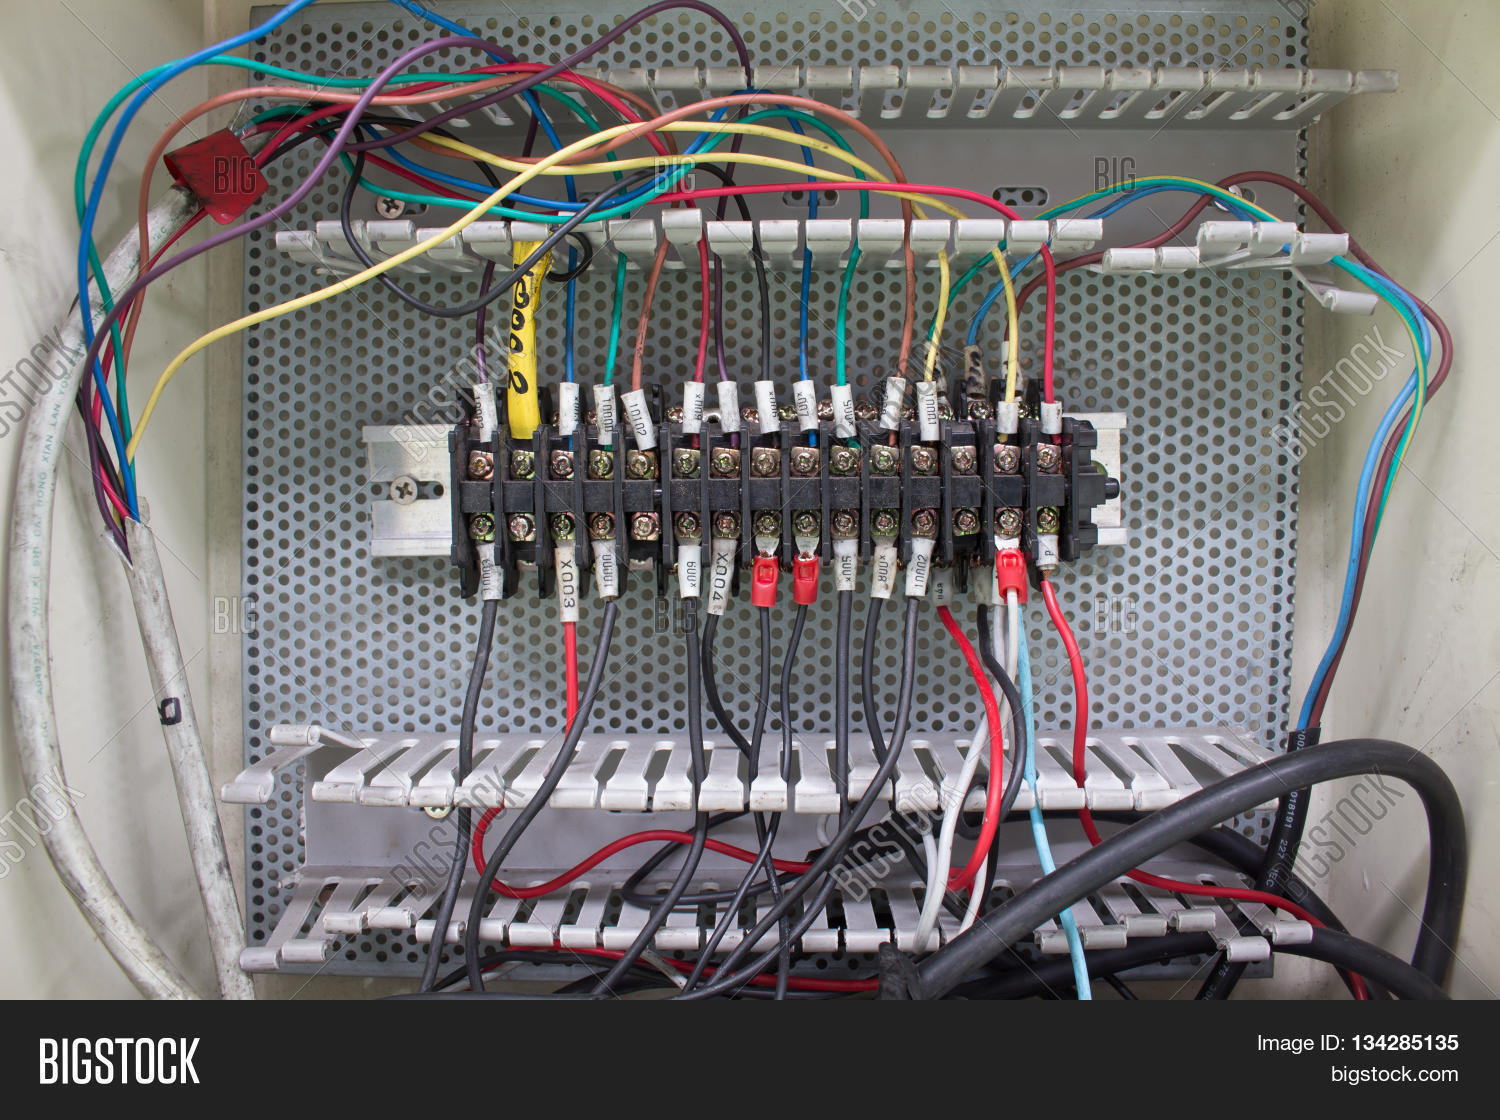 Panel Connector Wiring Diagrams For Dummies House Solar Panels Wire Image Photo Free Trial Bigstock Rh Bigstockphoto Com Boat Connectors